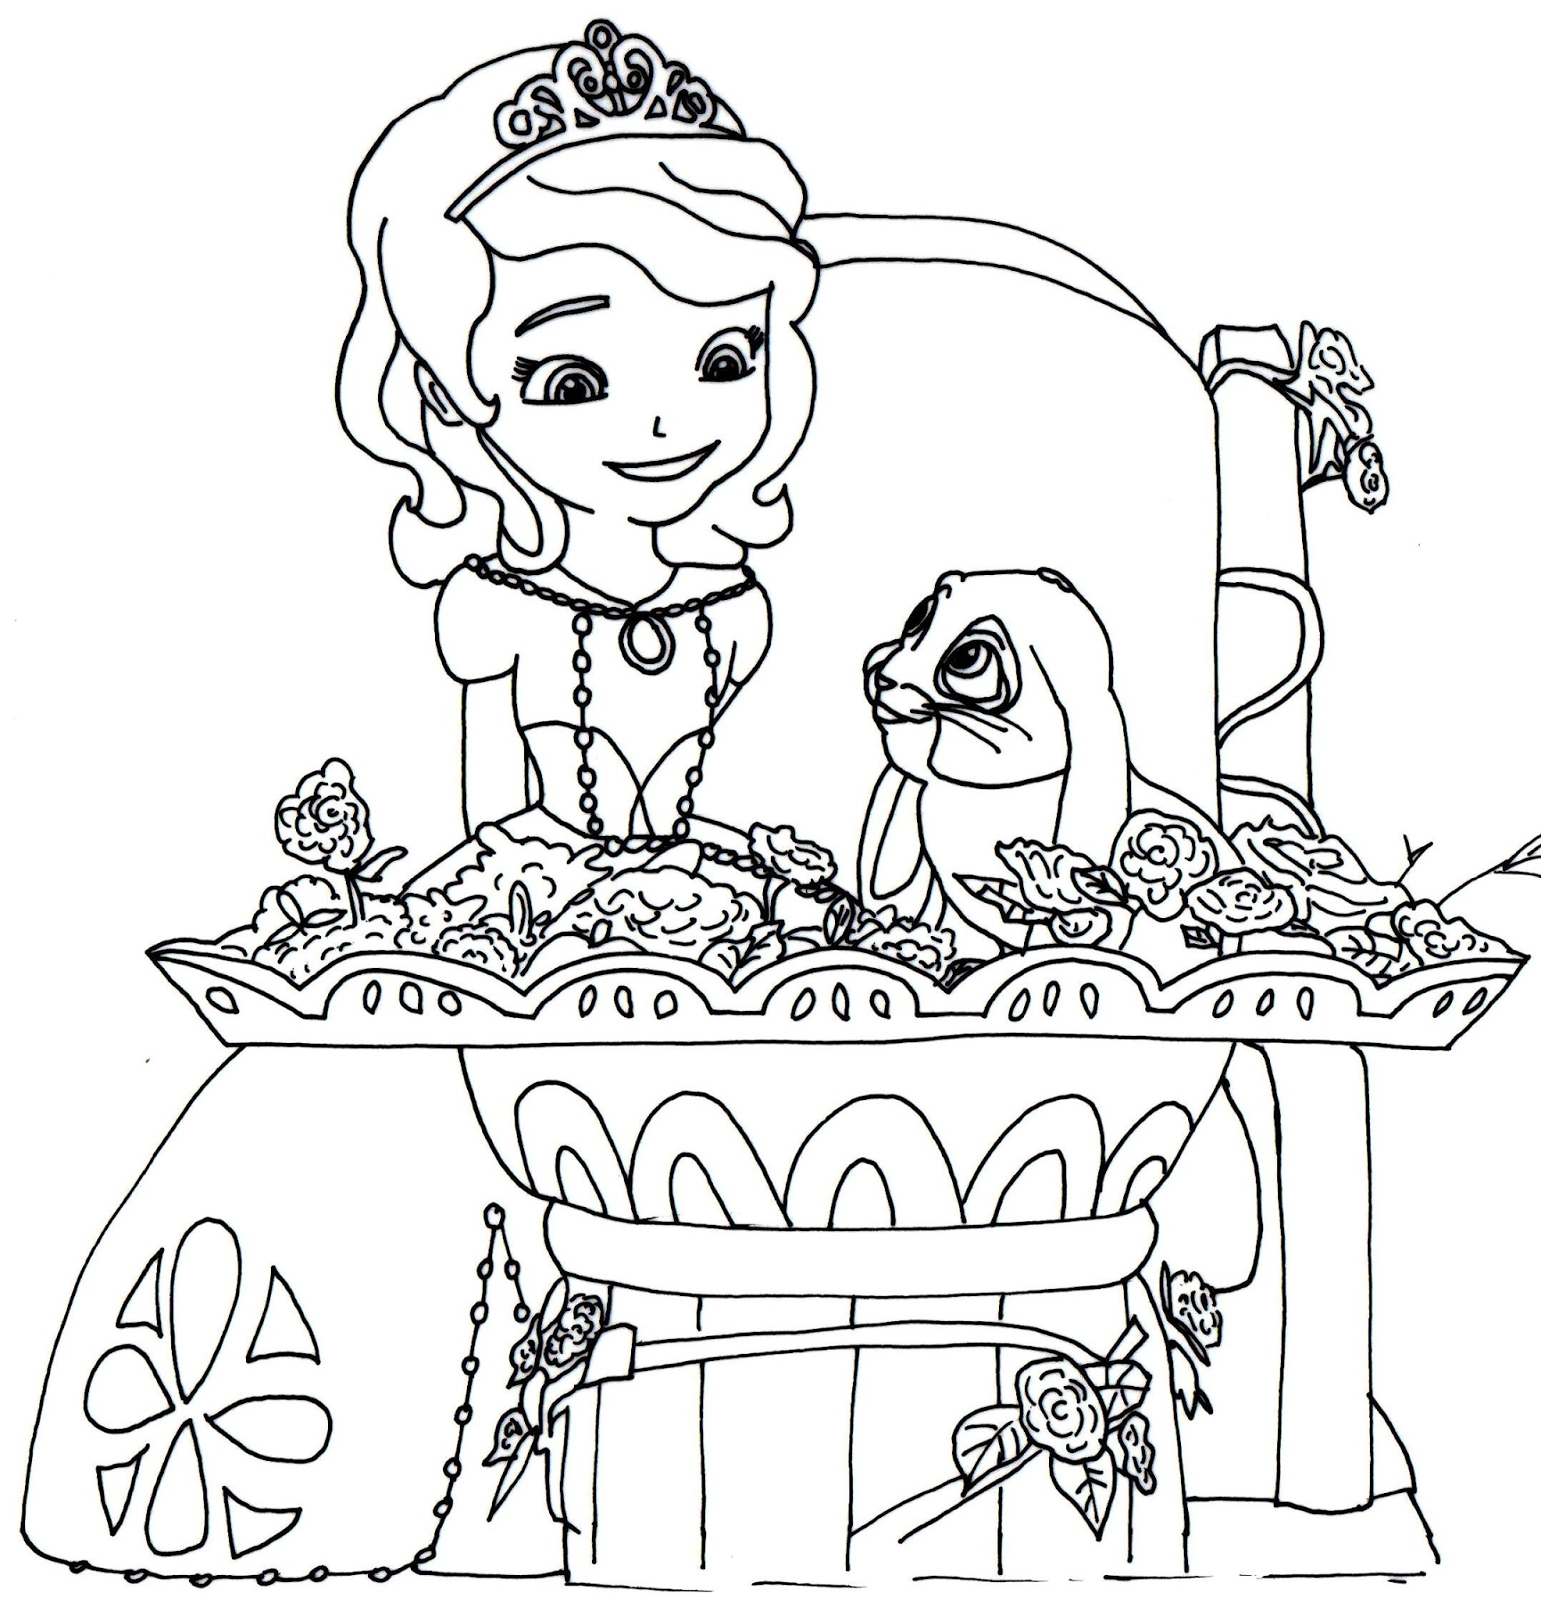 Disney princess sofia coloring pages